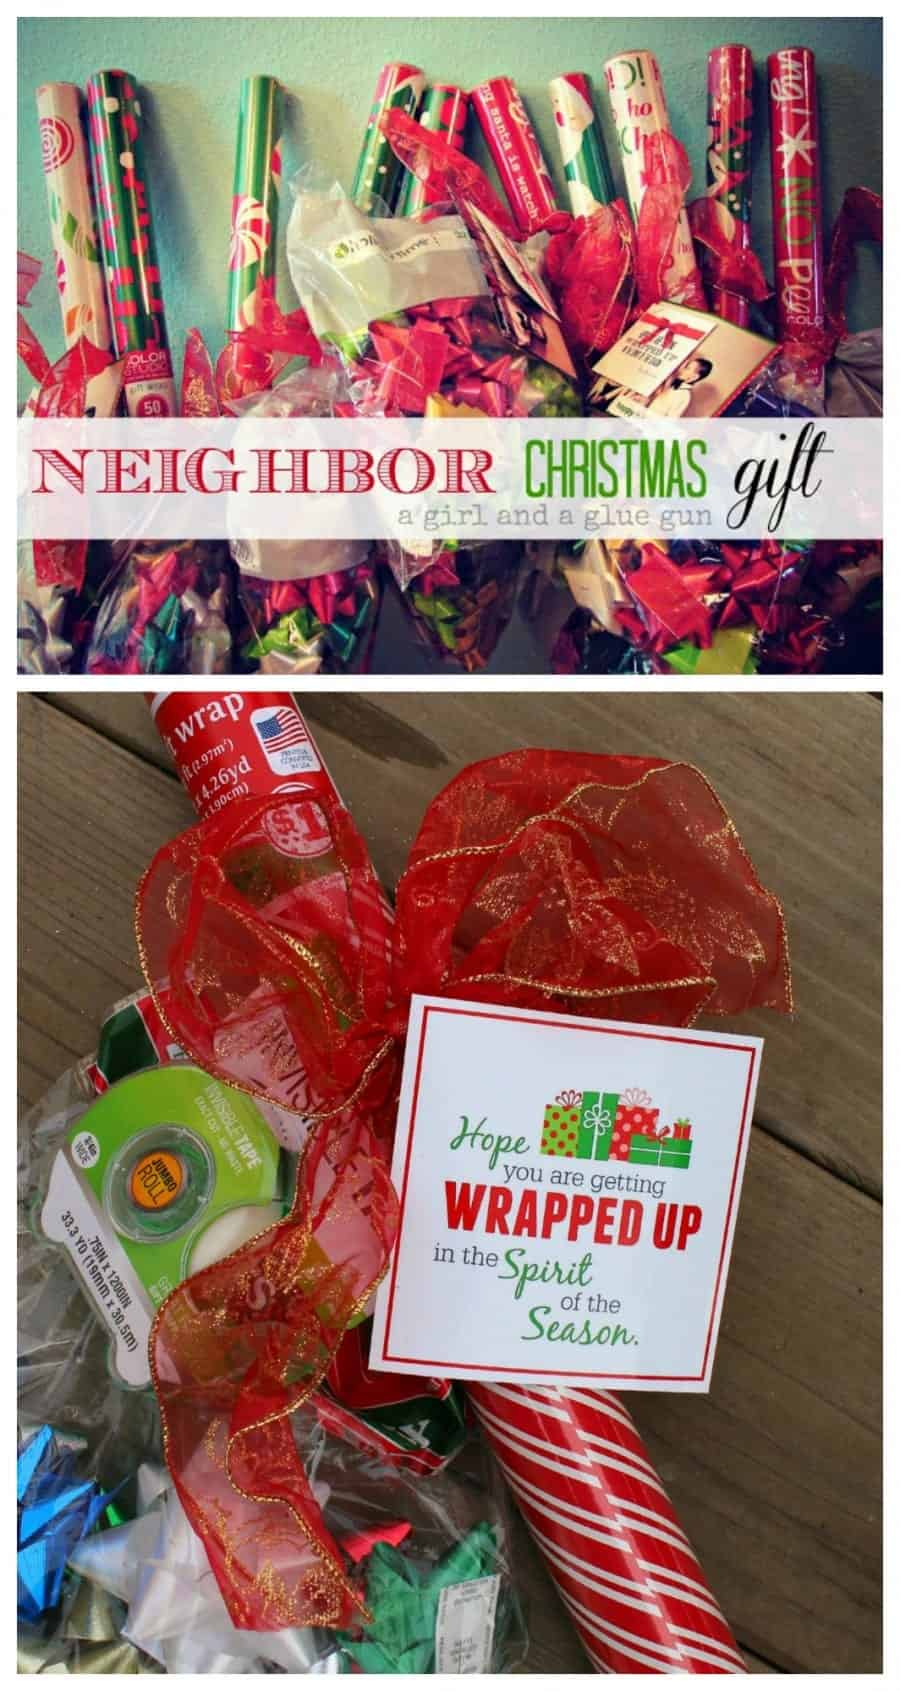 neighbor christmas gift...get wrapped up in the spirit